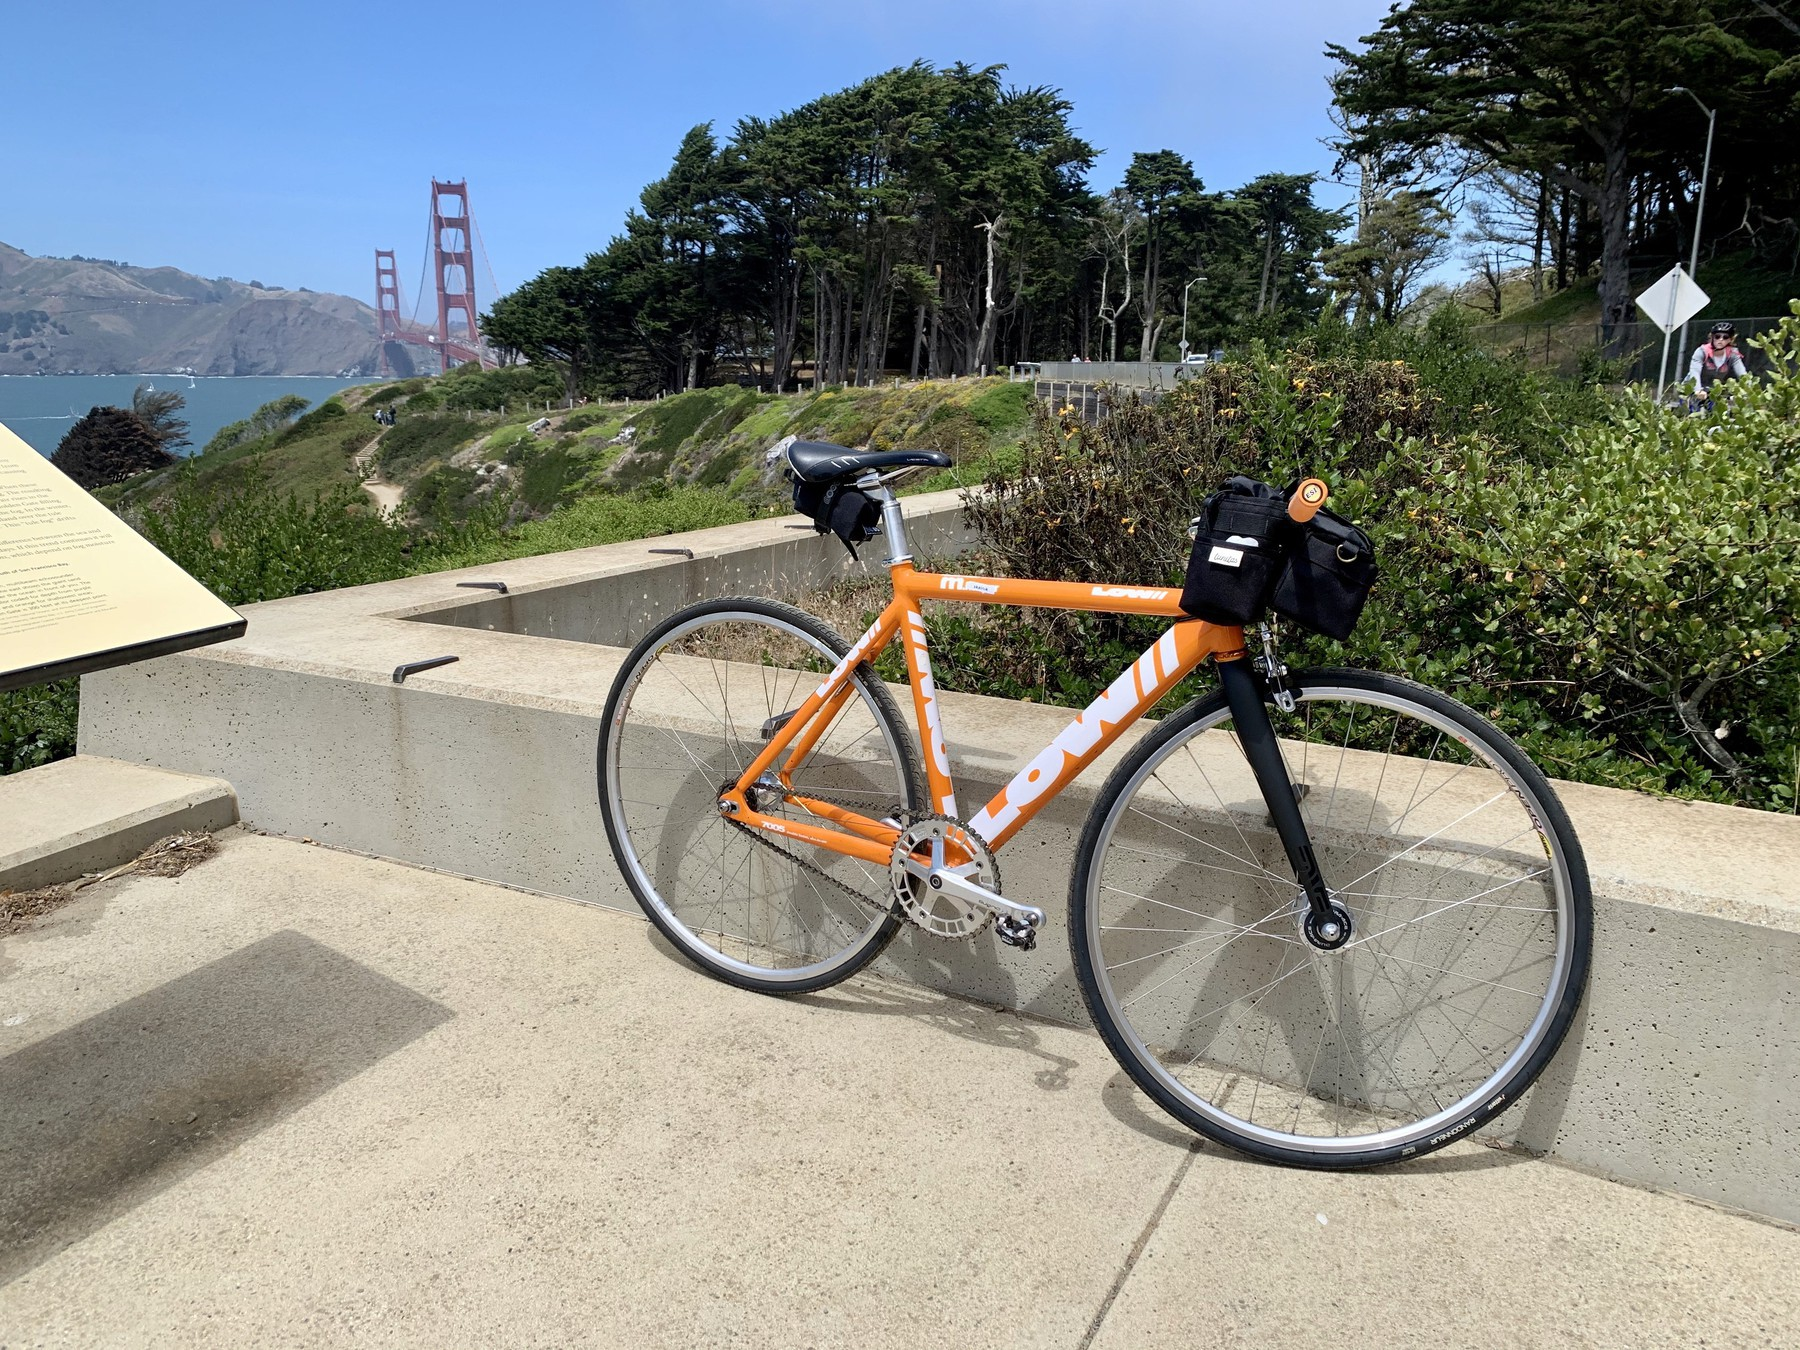 Orange fixed gear bicycle with Golden Gate Bridge in background